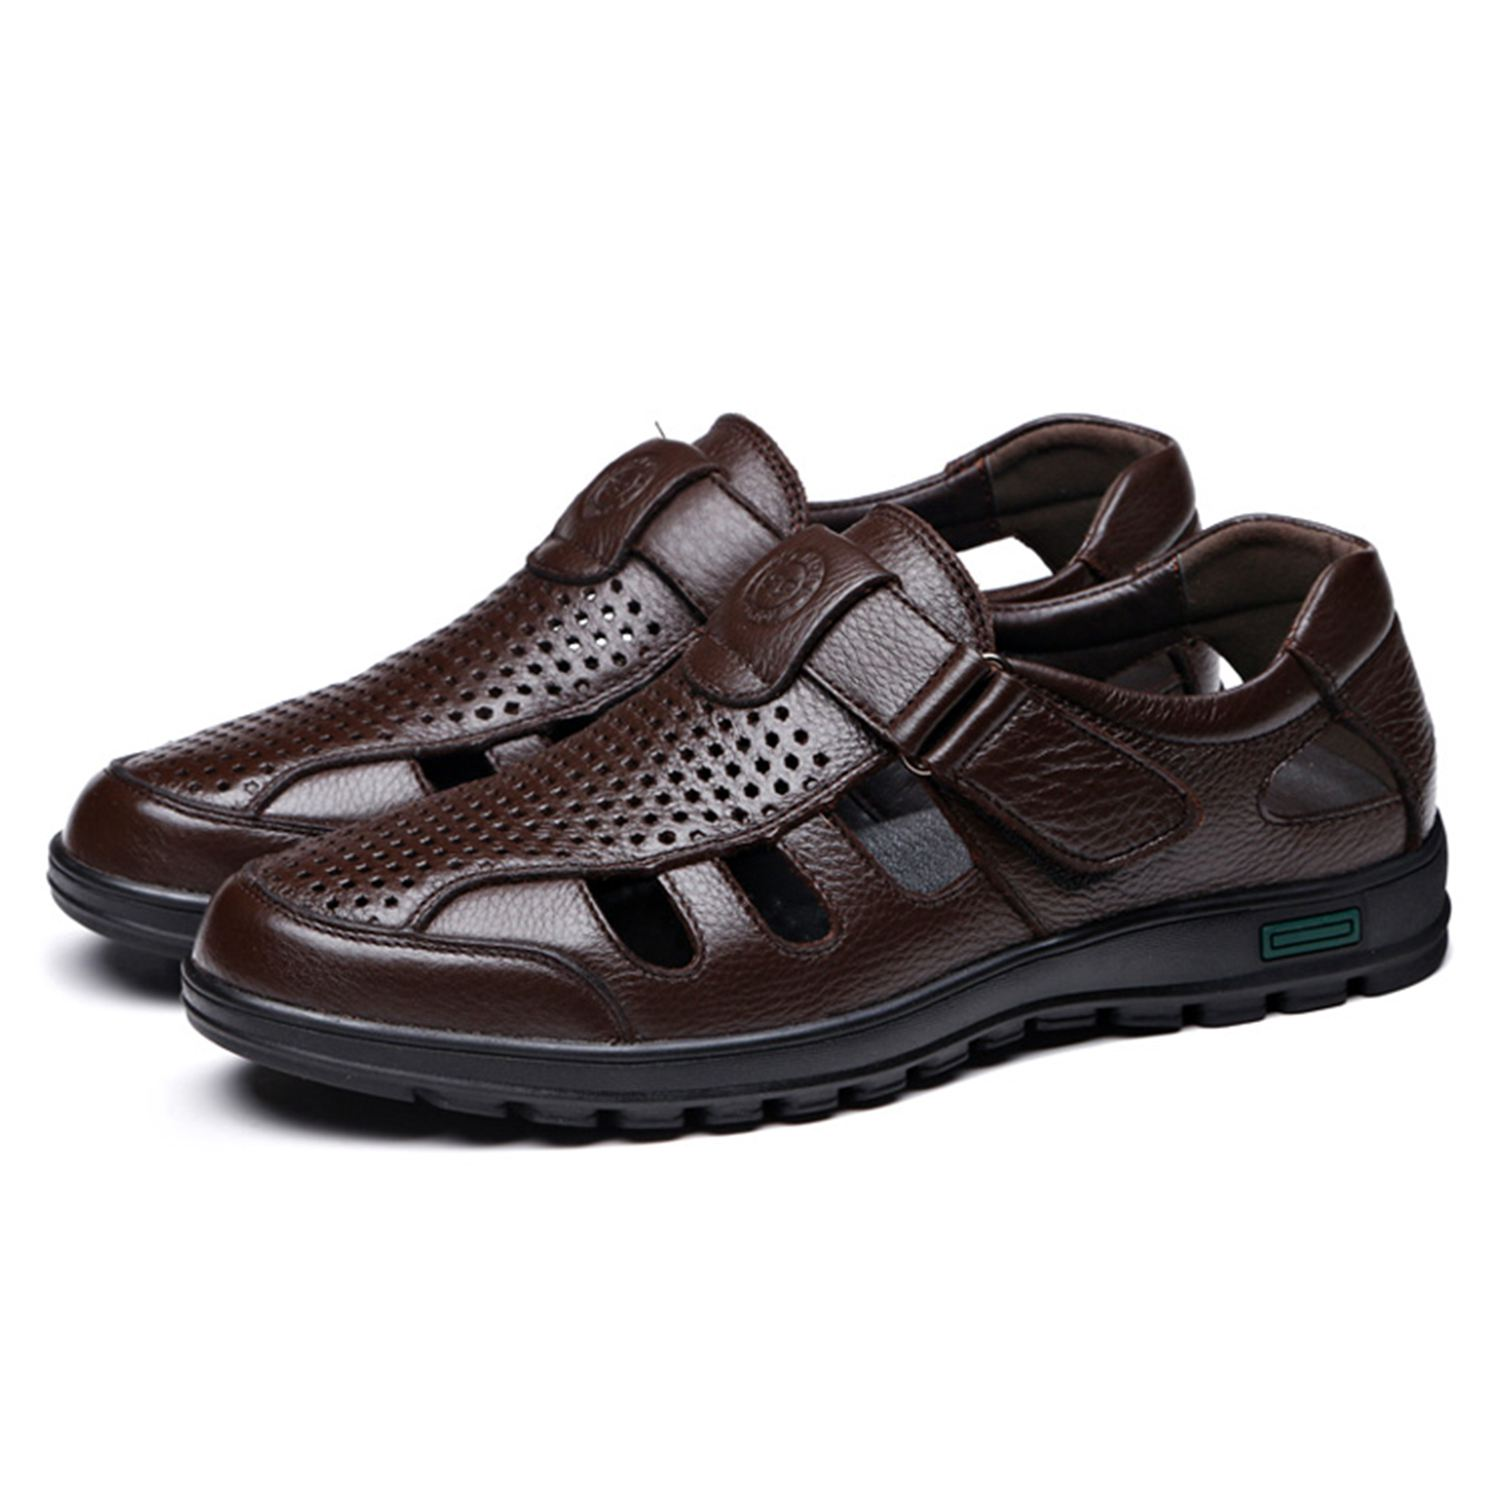 FGGS Genuine Leather Men Sandals Shoes Fretwork Breathable Fisherman Shoes Style Retro Gladiator Soft Bottom summer Classics m-in Men's Sandals from Shoes